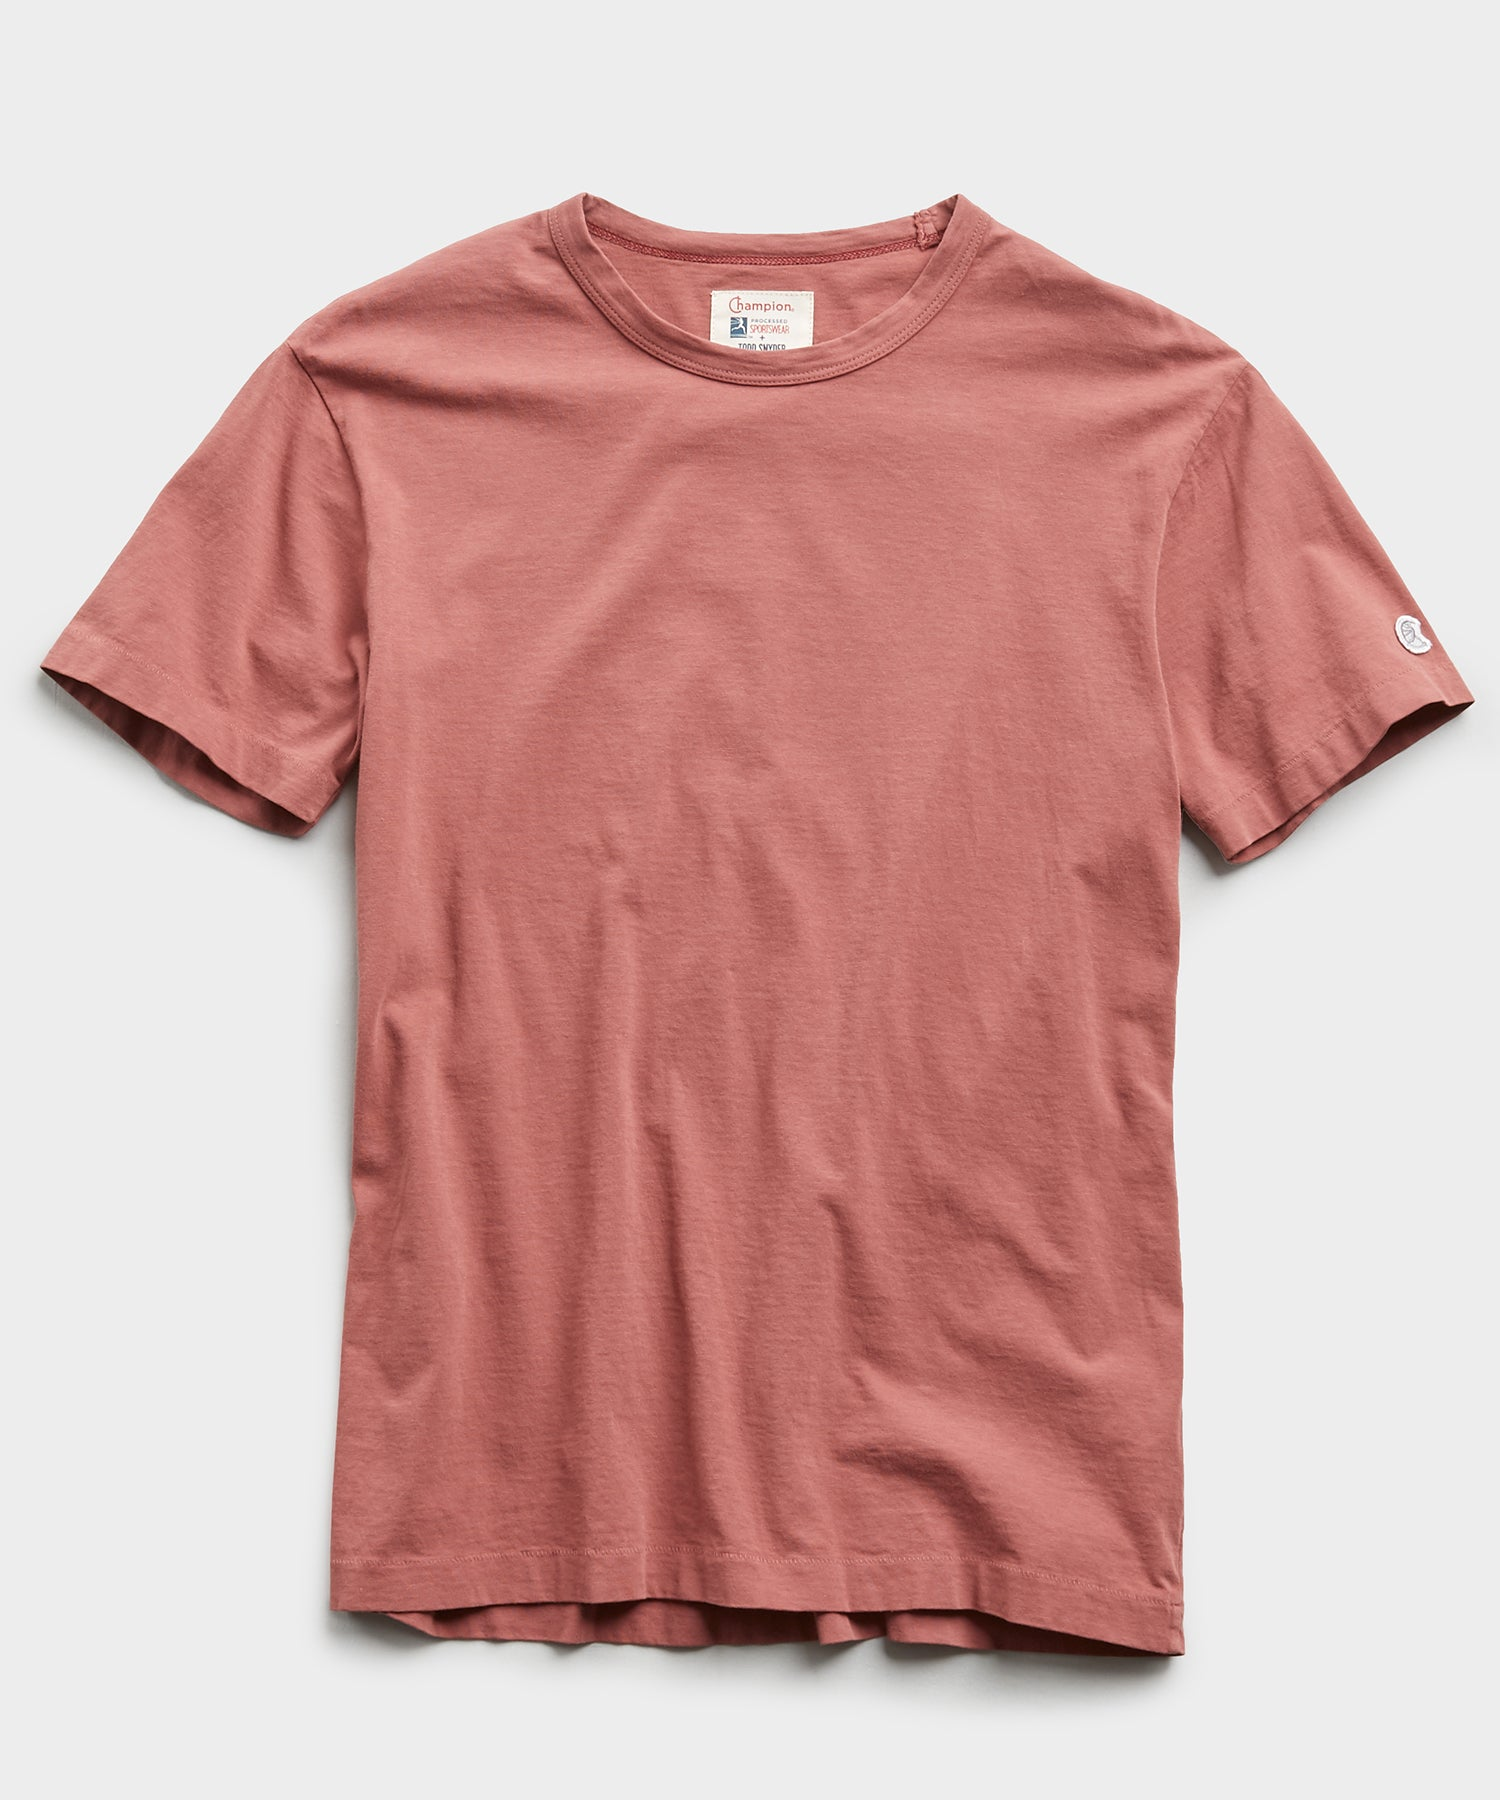 Basic Tee in Rosewine